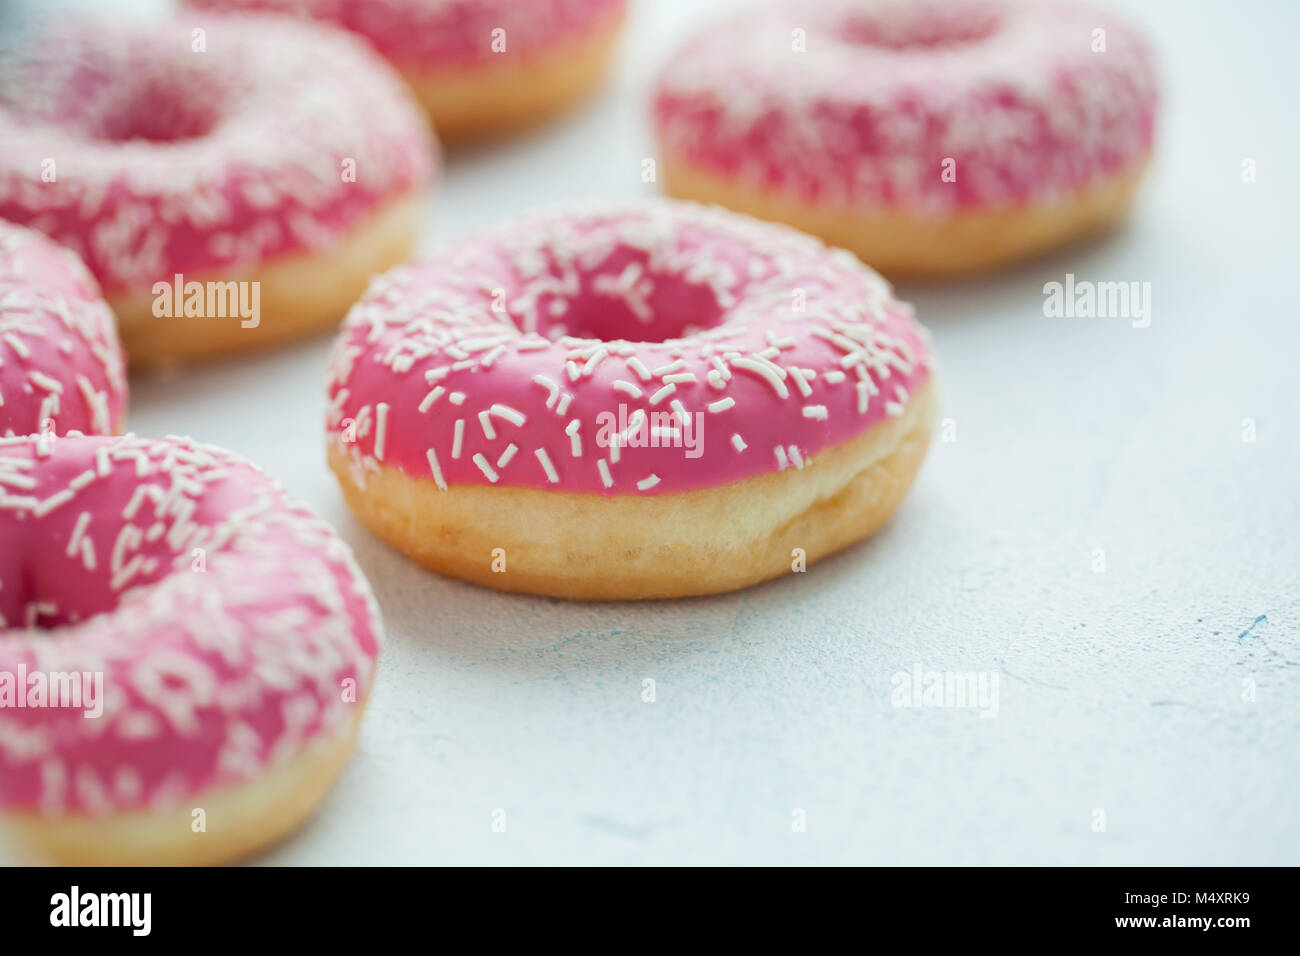 Donut. Sweet icing sugar food. Dessert colorful snack. Glazed sprinkles. Treat from delicious pastry breakfast. - Stock Image